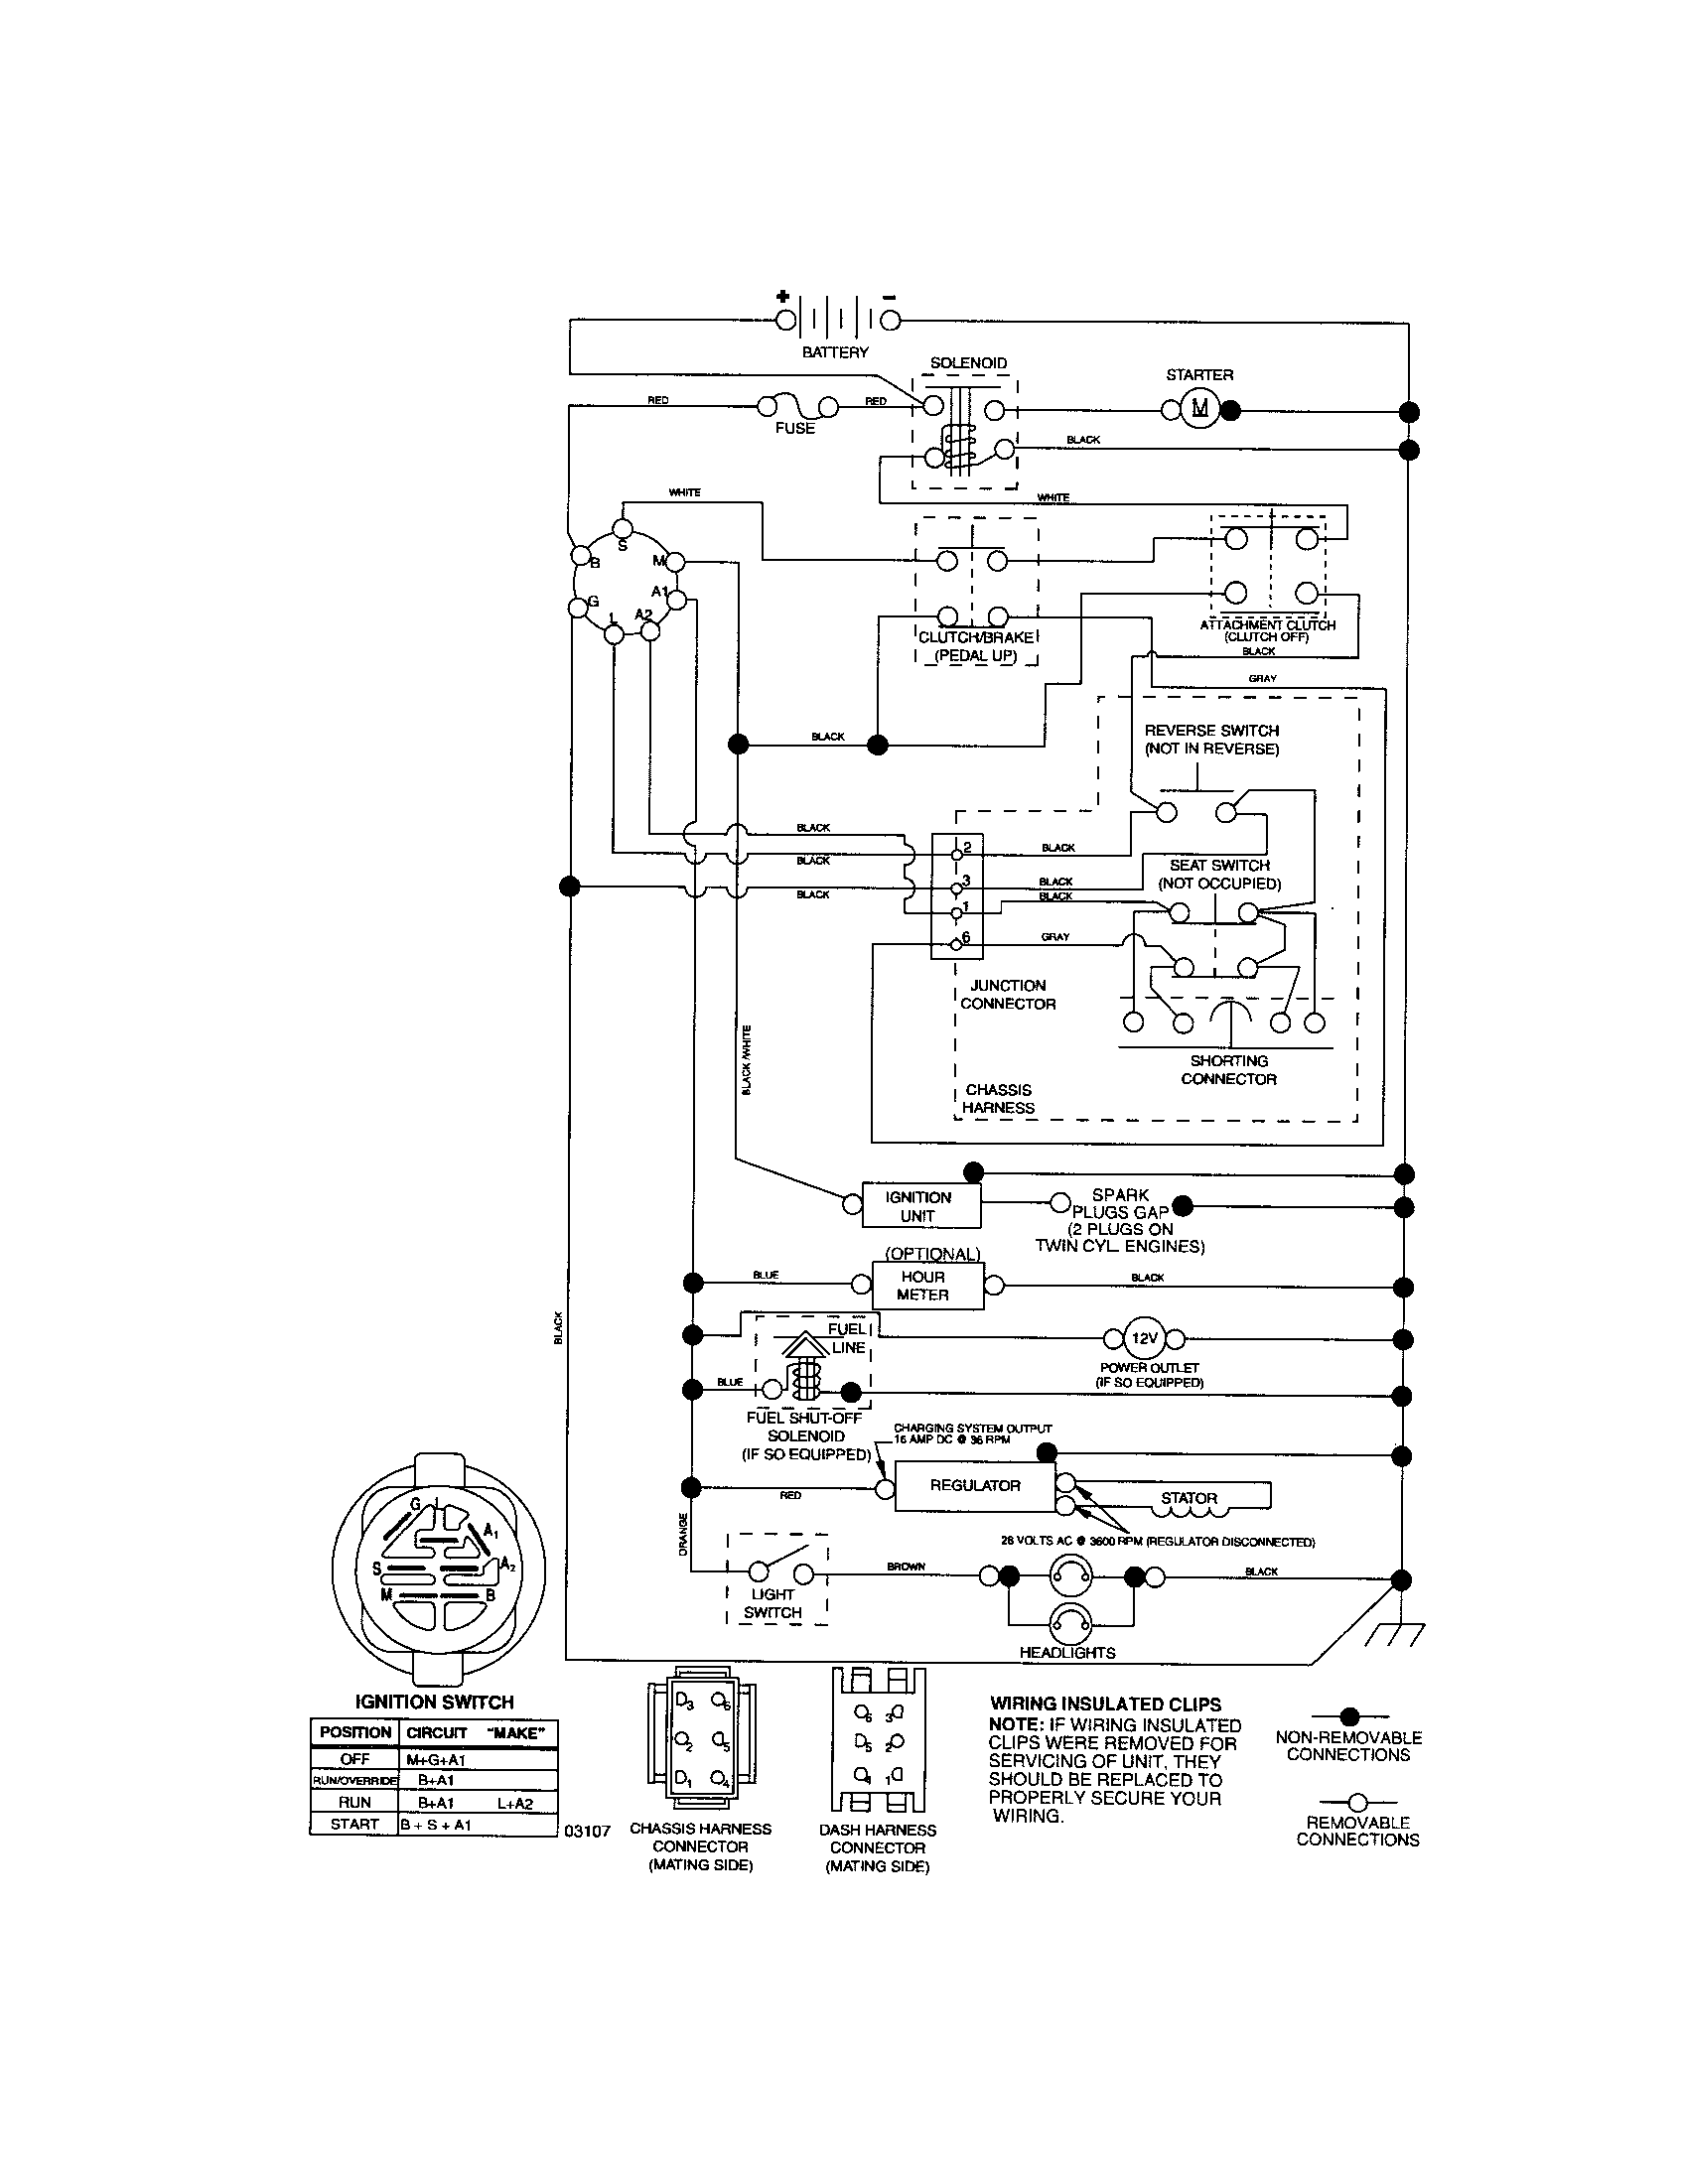 craftsman riding mower electrical diagram wiring diagram craftsman rh pinterest com craftsman wiring diagram 917.273080 craftsman wiring diagram